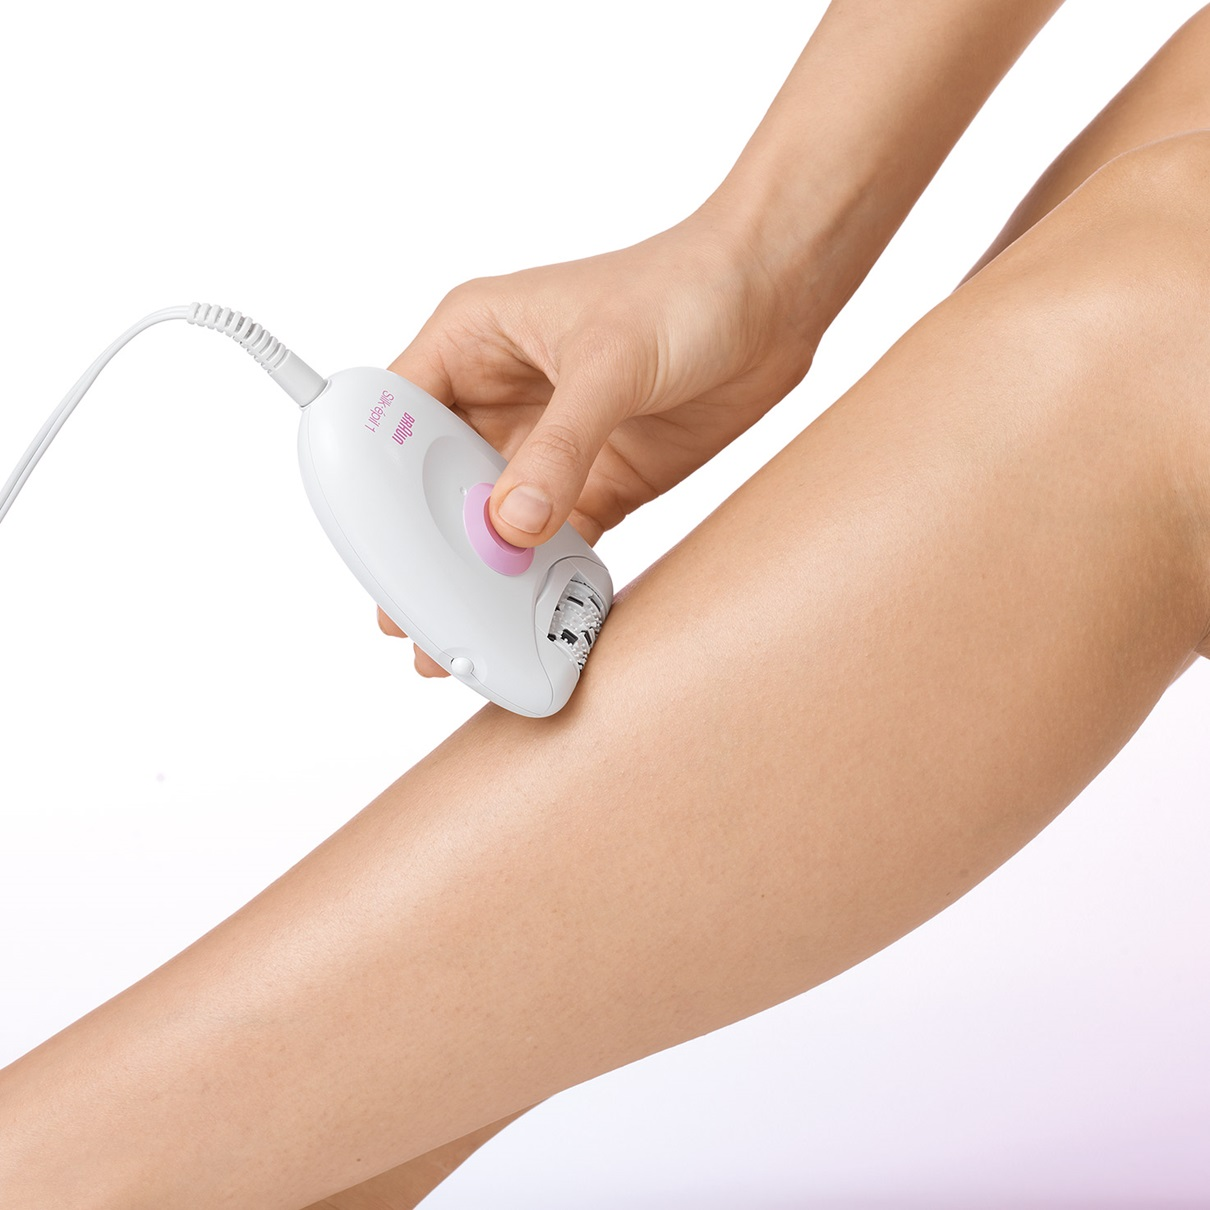 Braun Silk-épil 1 - 1170 Legs Epilator - in use